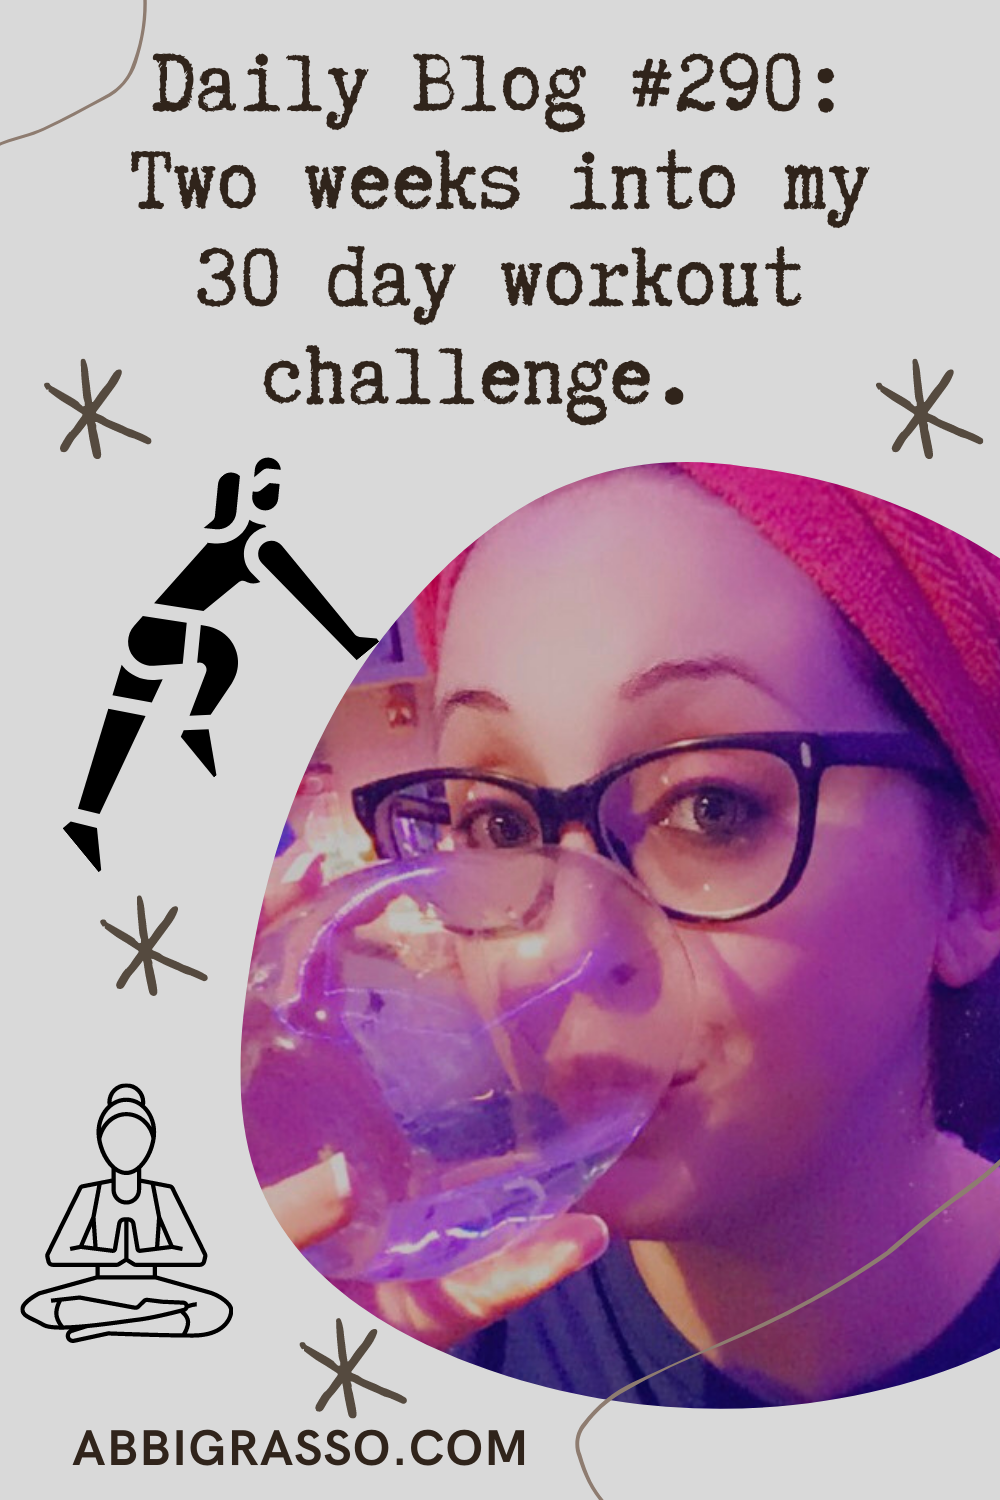 Daily Blog #290: Two weeks into my 30 day workout challenge.